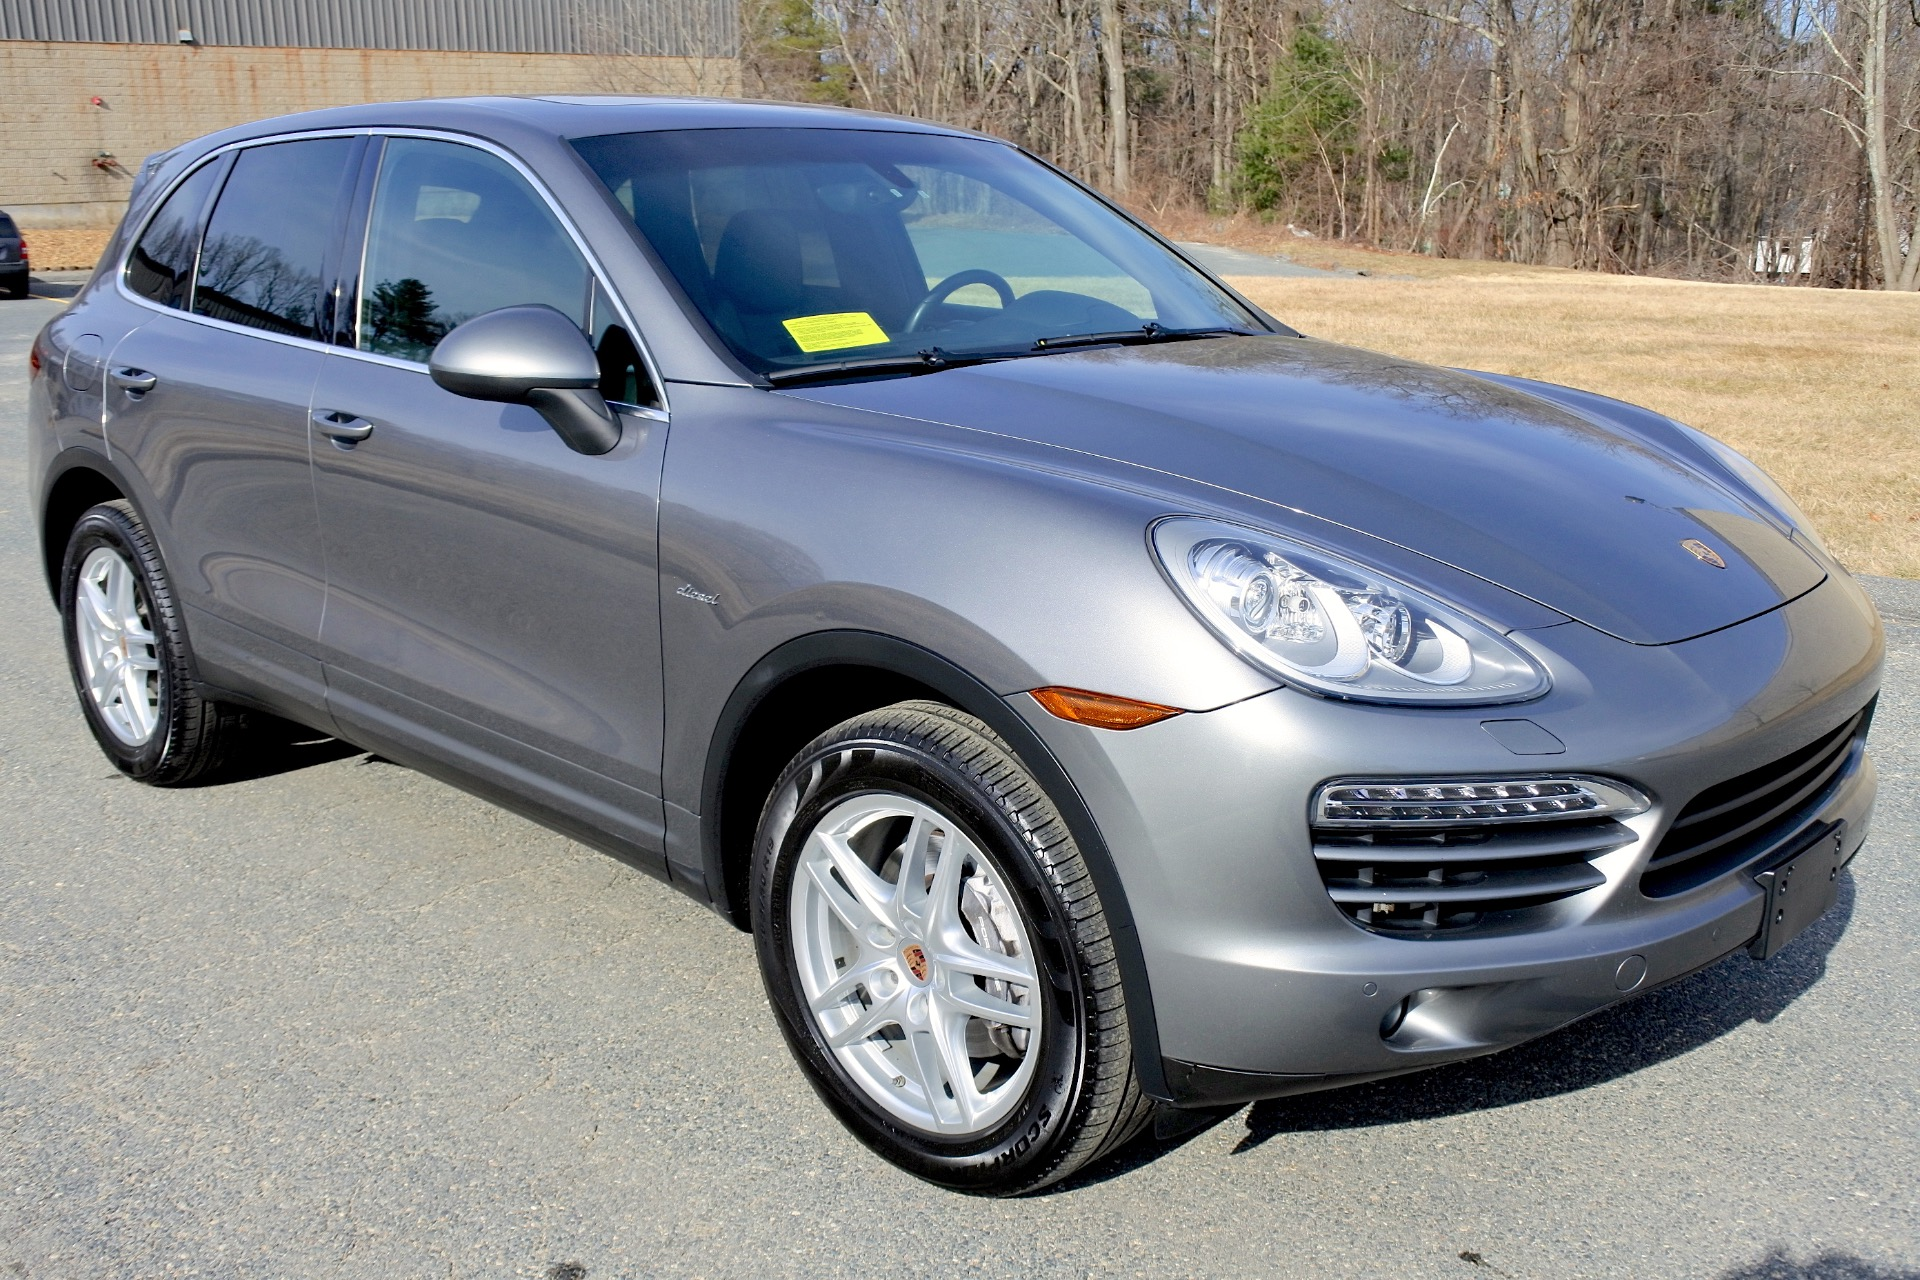 Used 2013 Porsche Cayenne Diesel AWD Used 2013 Porsche Cayenne Diesel AWD for sale  at Metro West Motorcars LLC in Shrewsbury MA 8